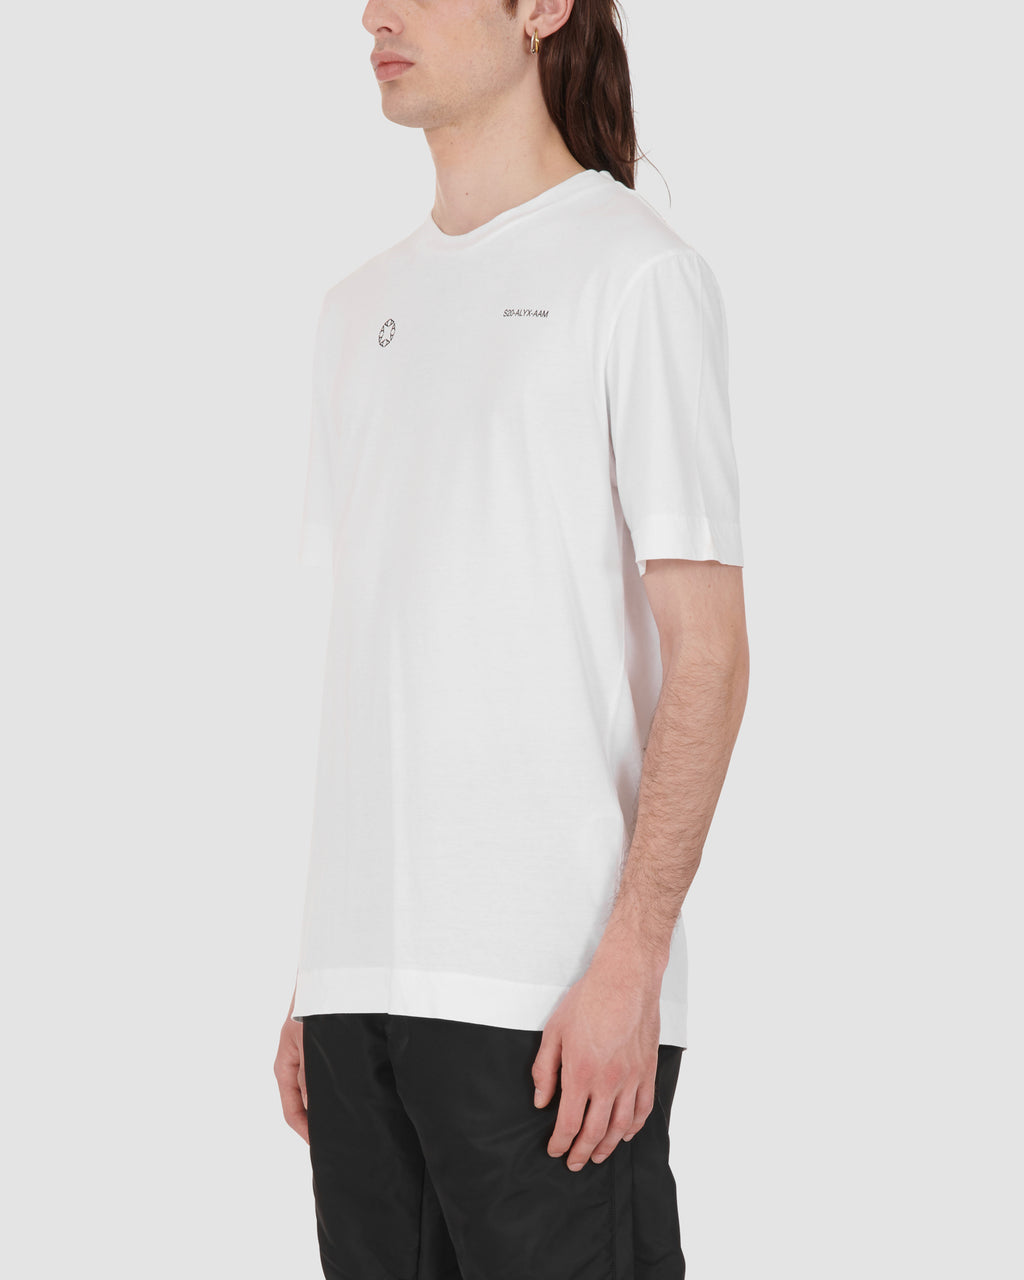 1017 ALYX 9SM | SS TEE | T-Shirt | Google Shopping, Man, MEN, S20, SS20, T-Shirts, WHITE